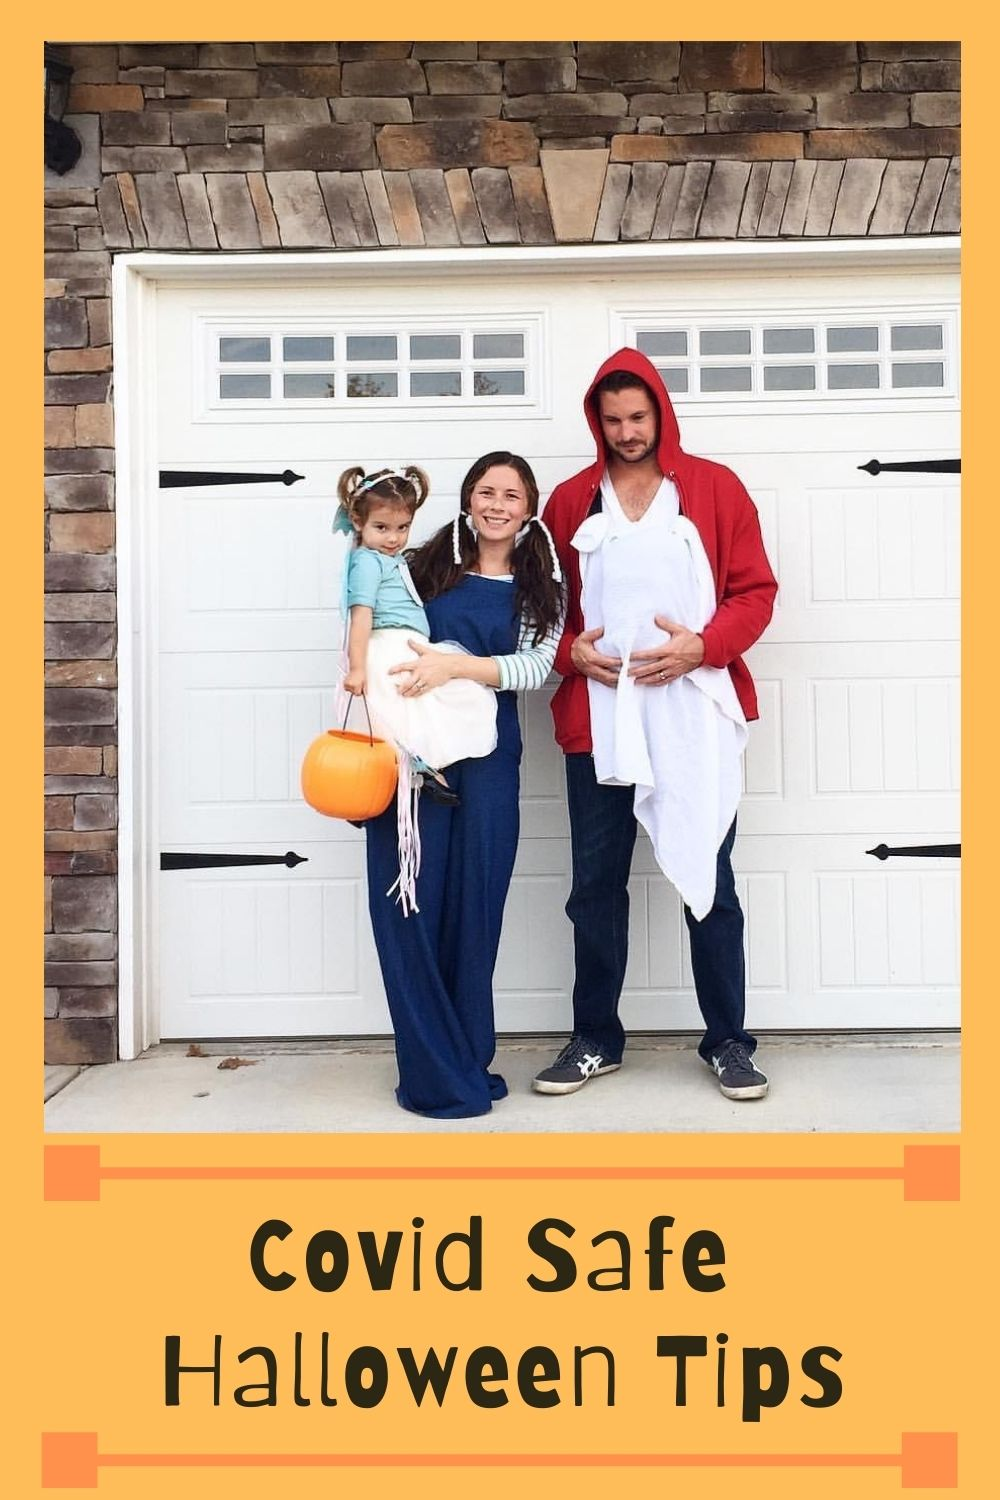 Looking for tips for a safe Halloween during Coronavirus? Here is how to to celebrate a safe Halloween during Covid.